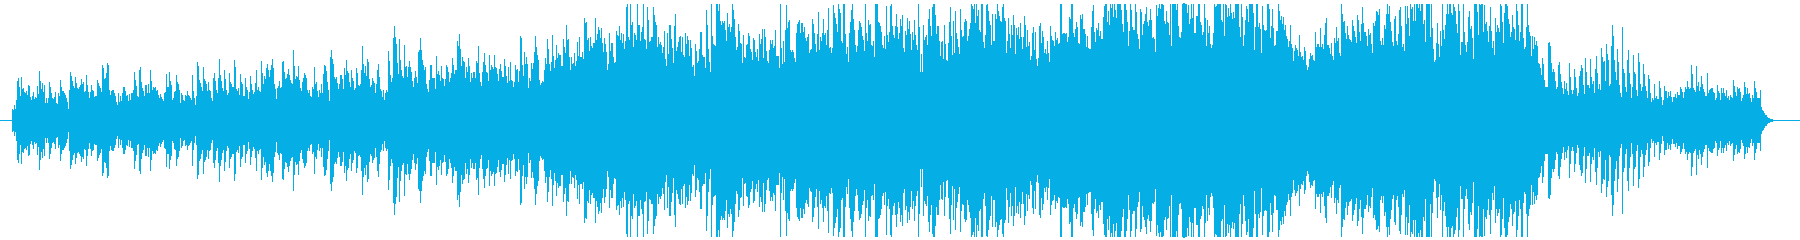 Passionate Piano's reproduced waveform